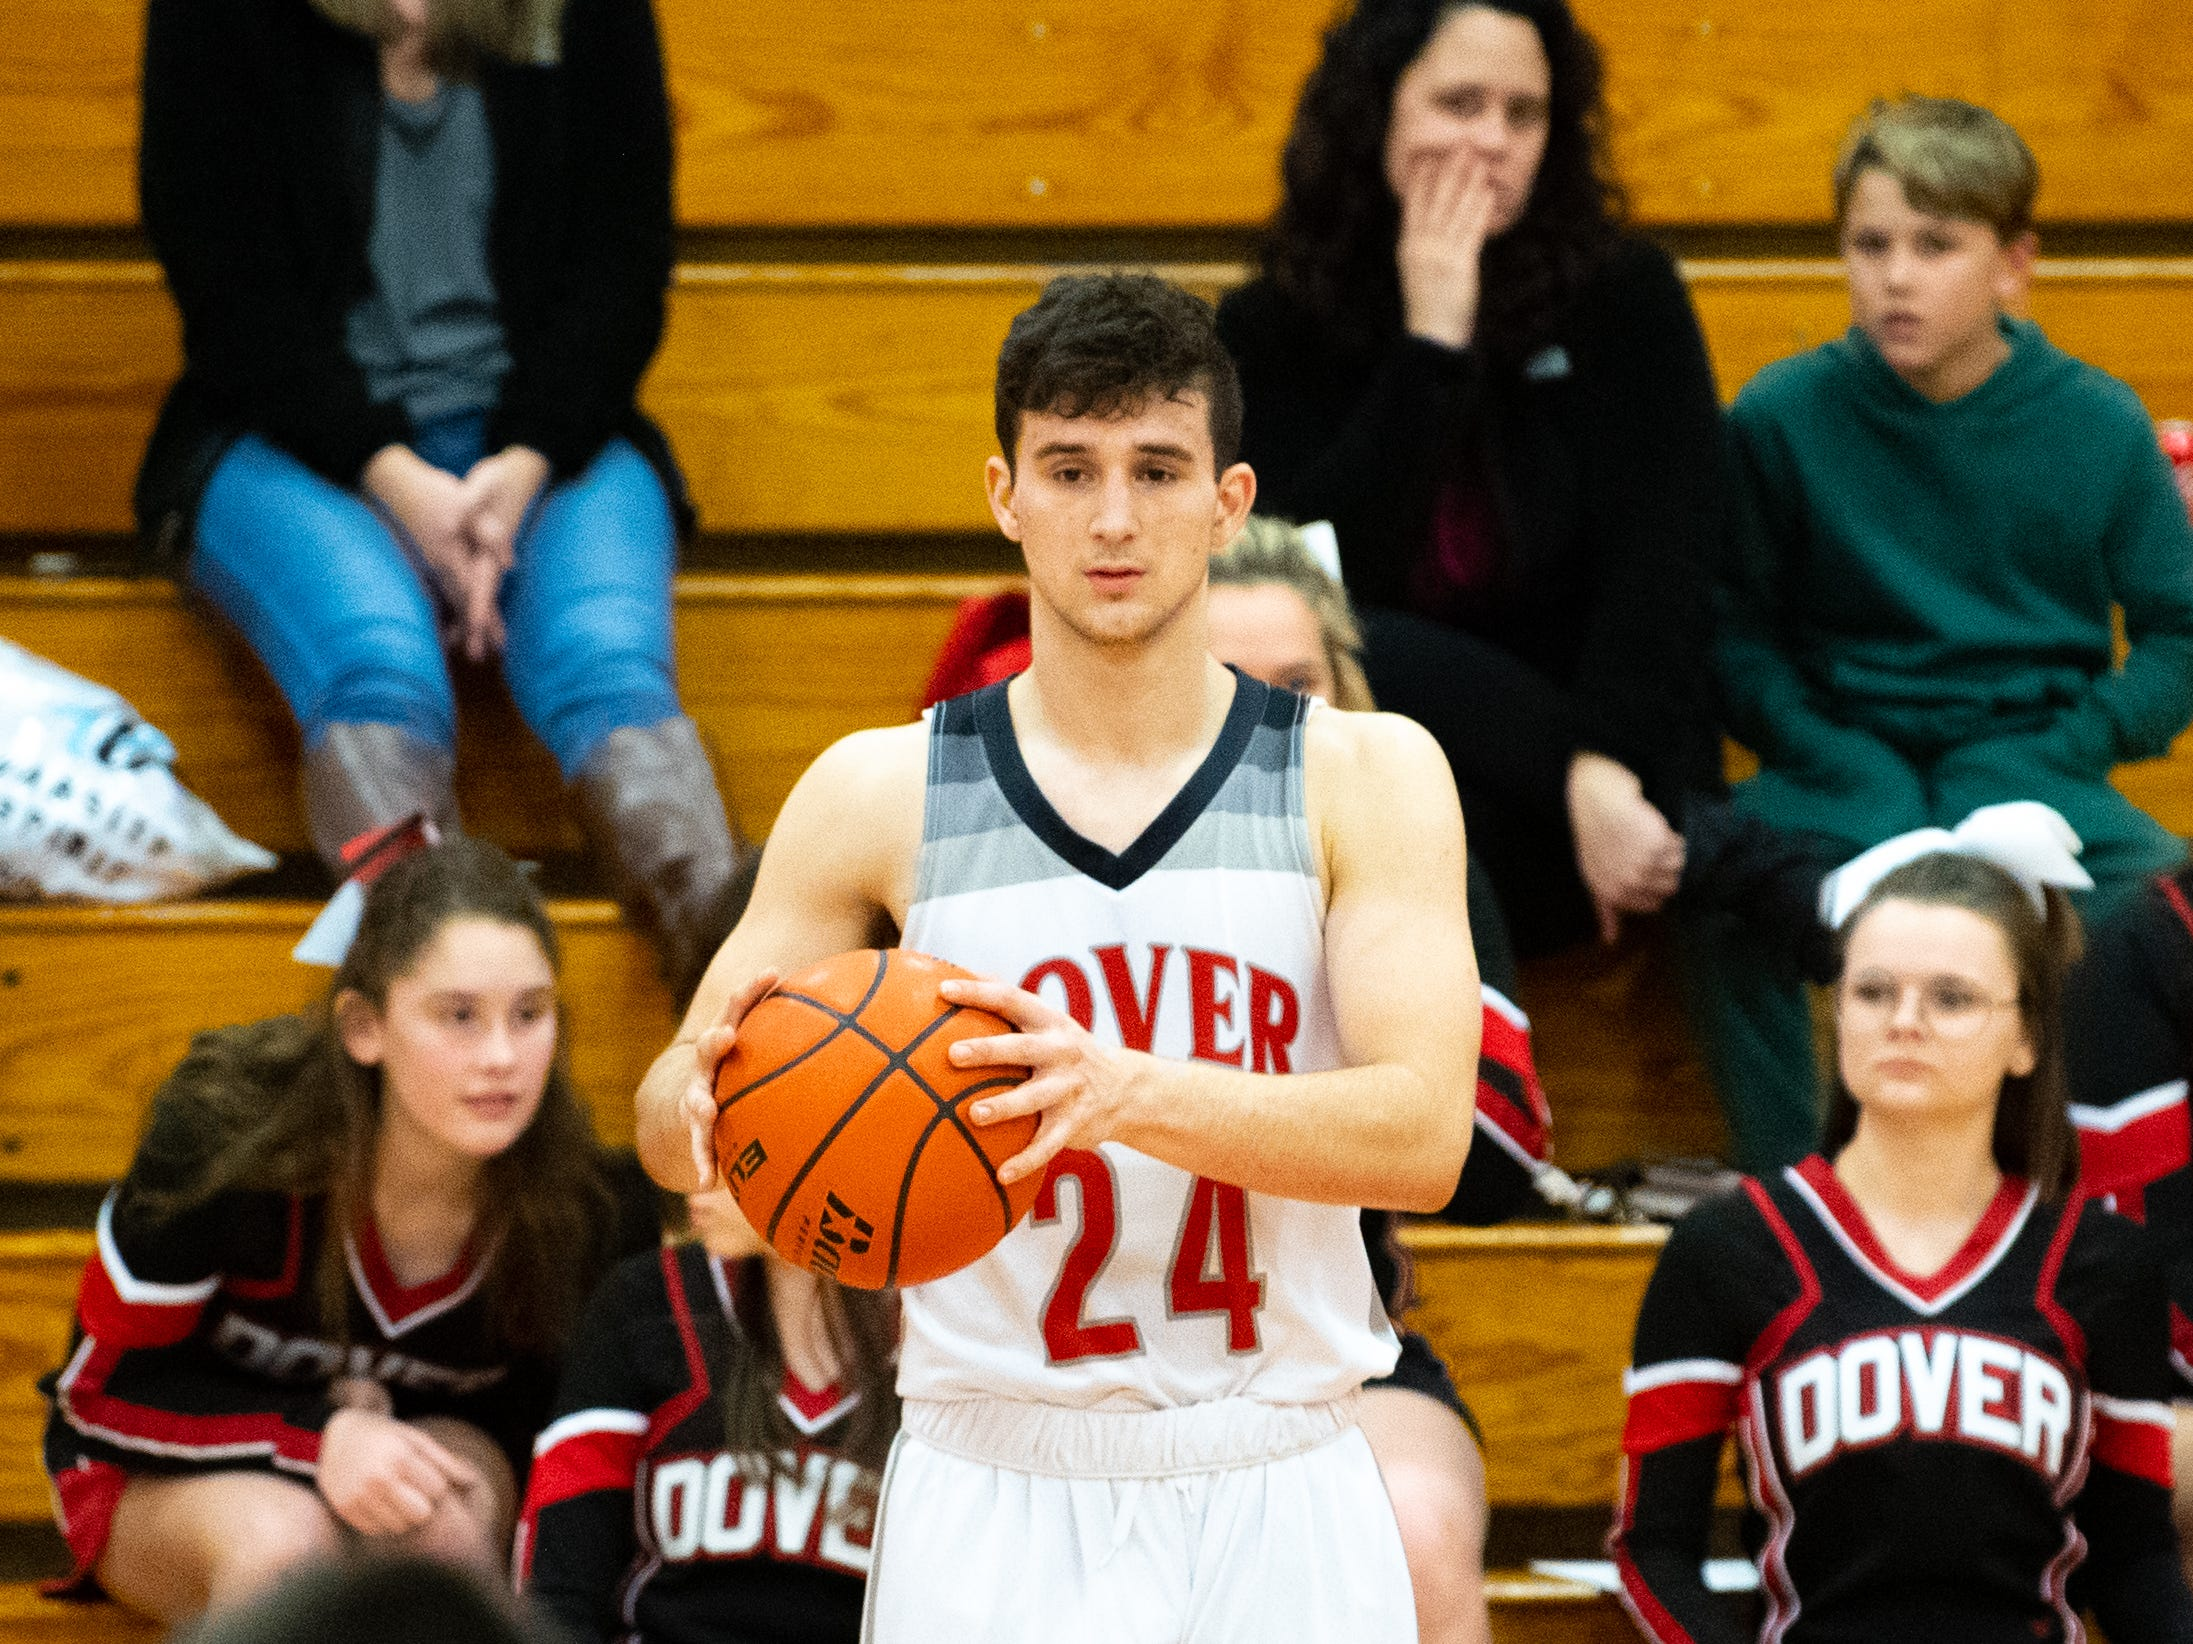 Adam Jovicevic (24) prepares to pass the ball in during the boys' basketball game between Dover and Susquehannock at Dover Area High School, December 18, 2018. The Eagles defeated the Warriors 69-61.